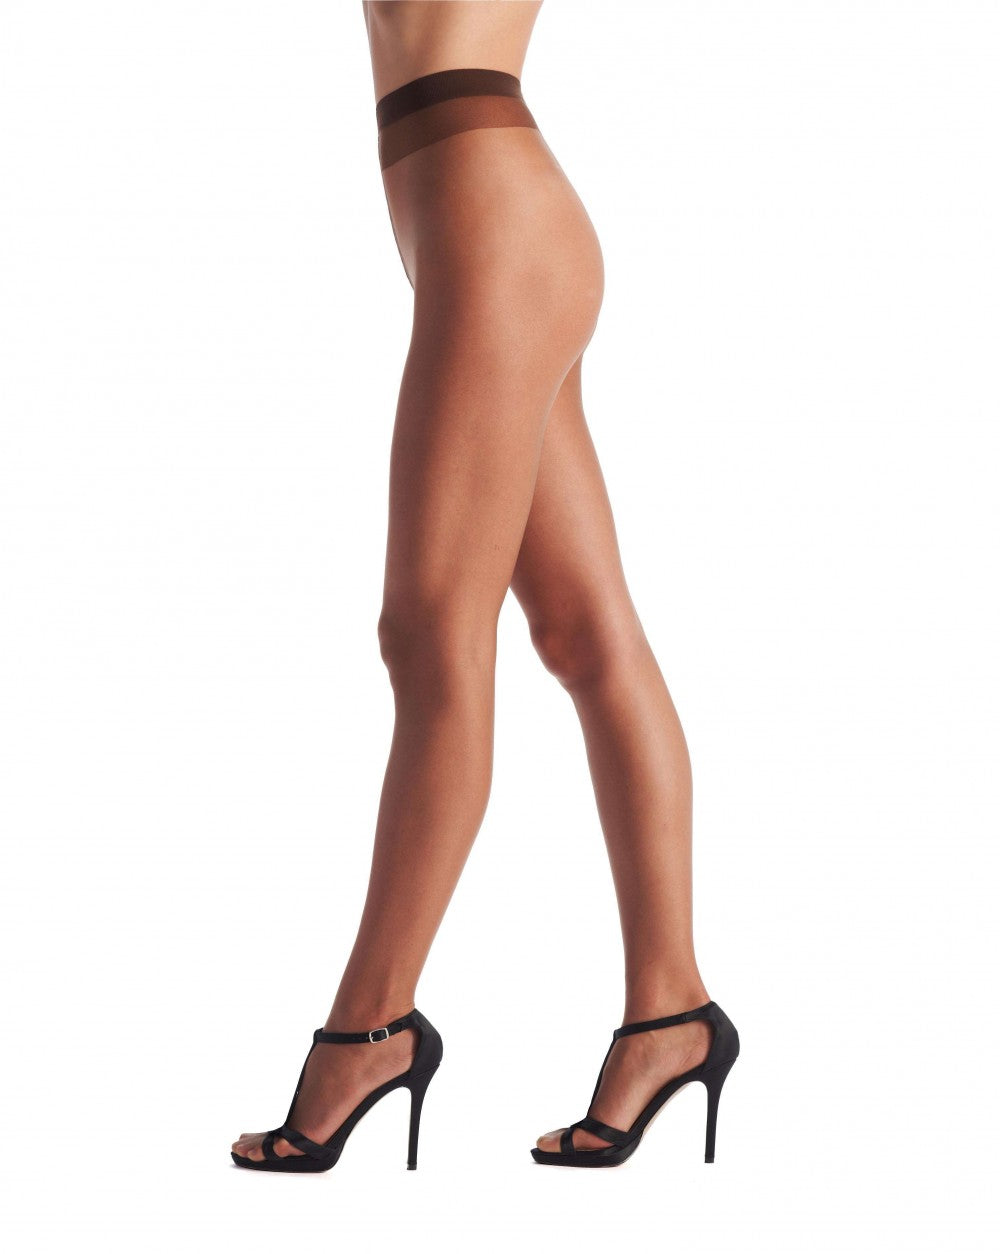 OROBLU Tights Suntime Bronzing Effect, SUN